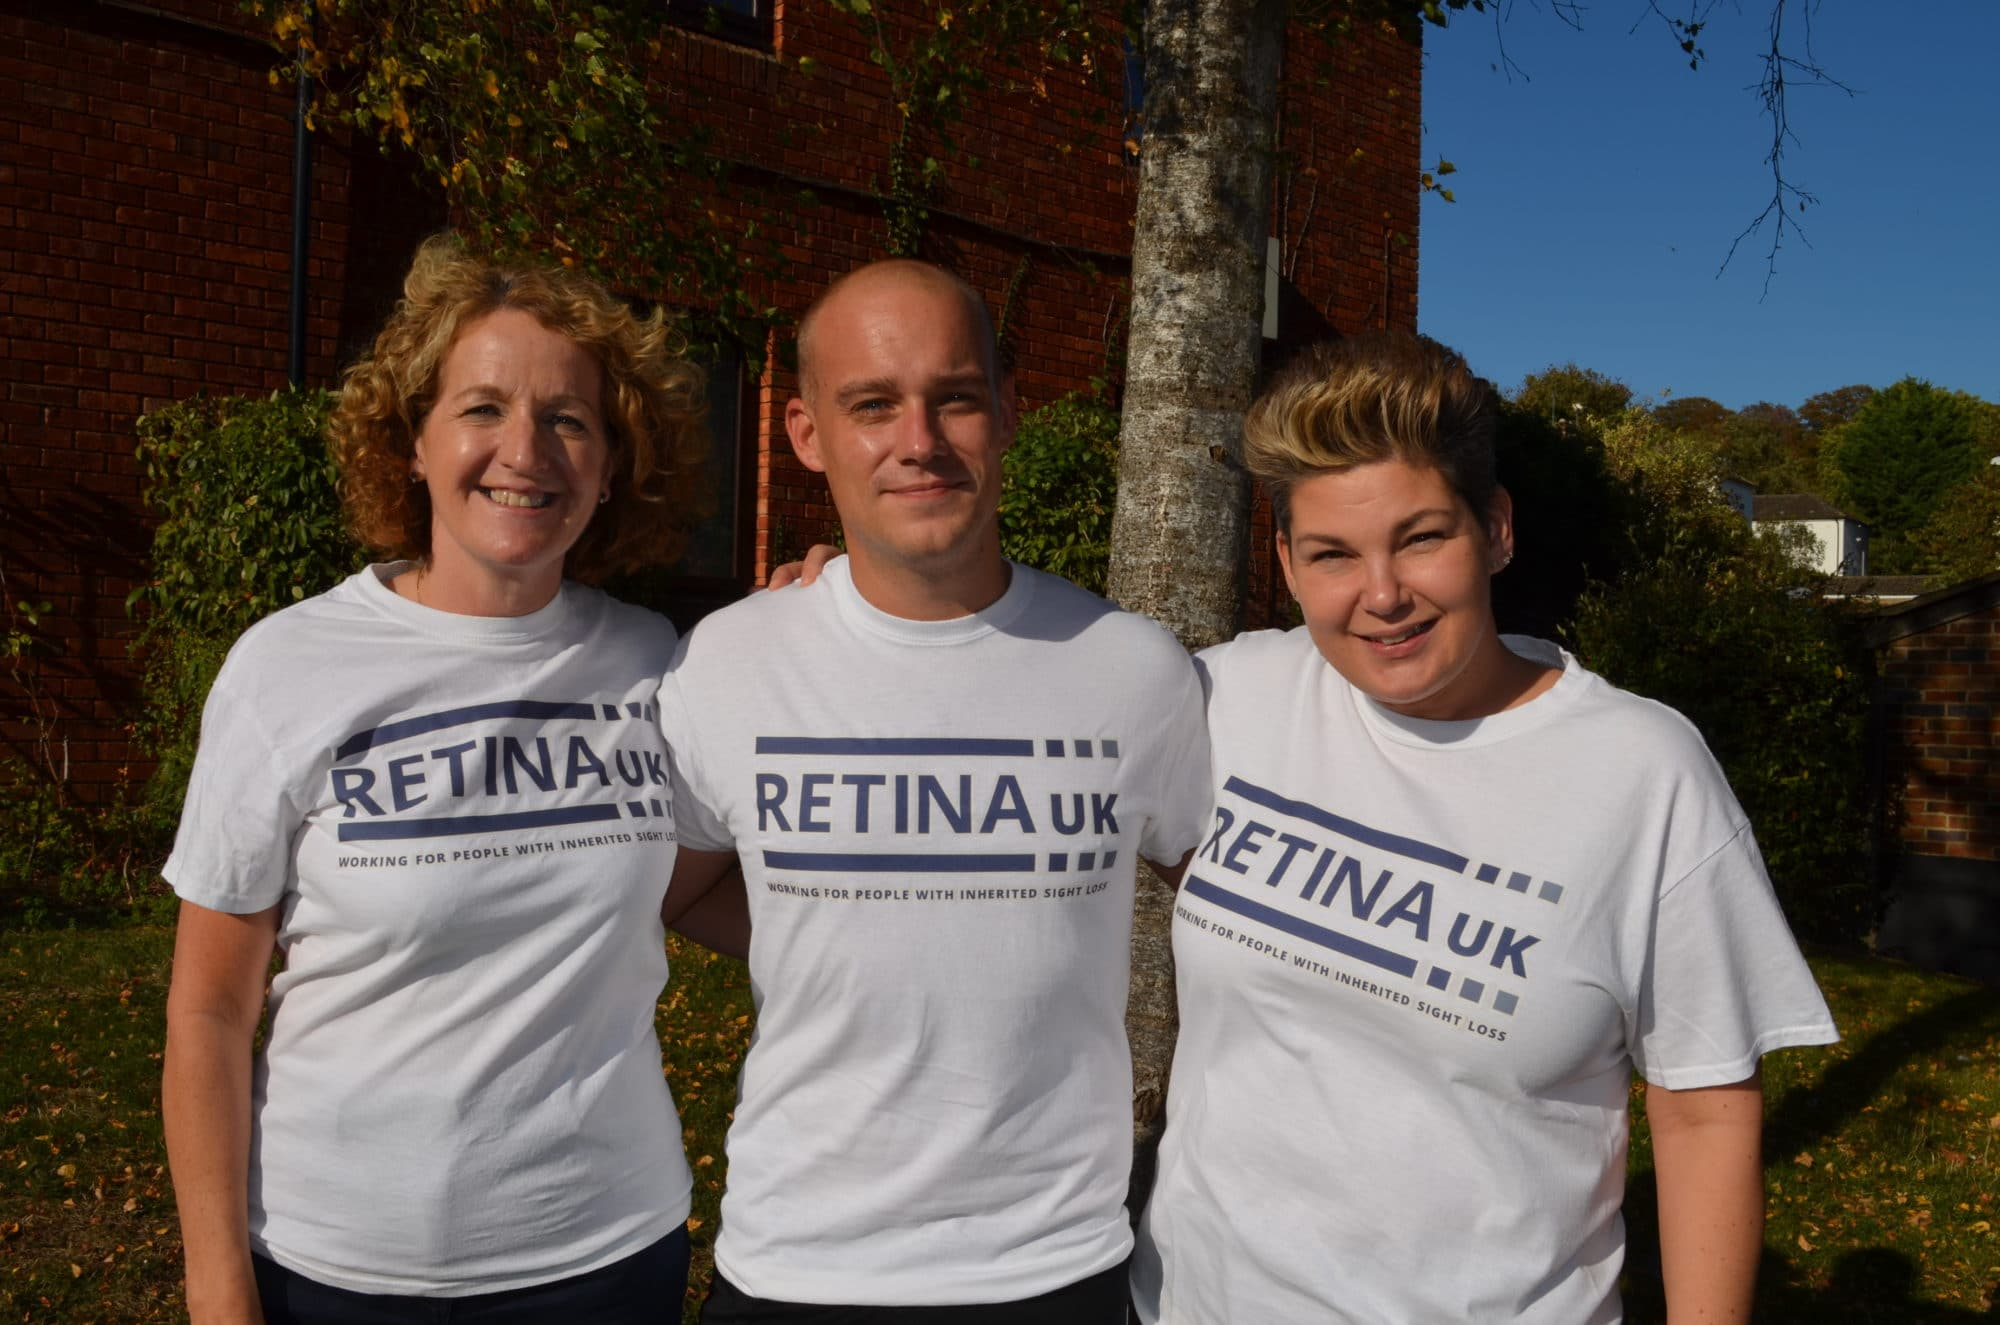 Three people smiling in Retina UK T shirts